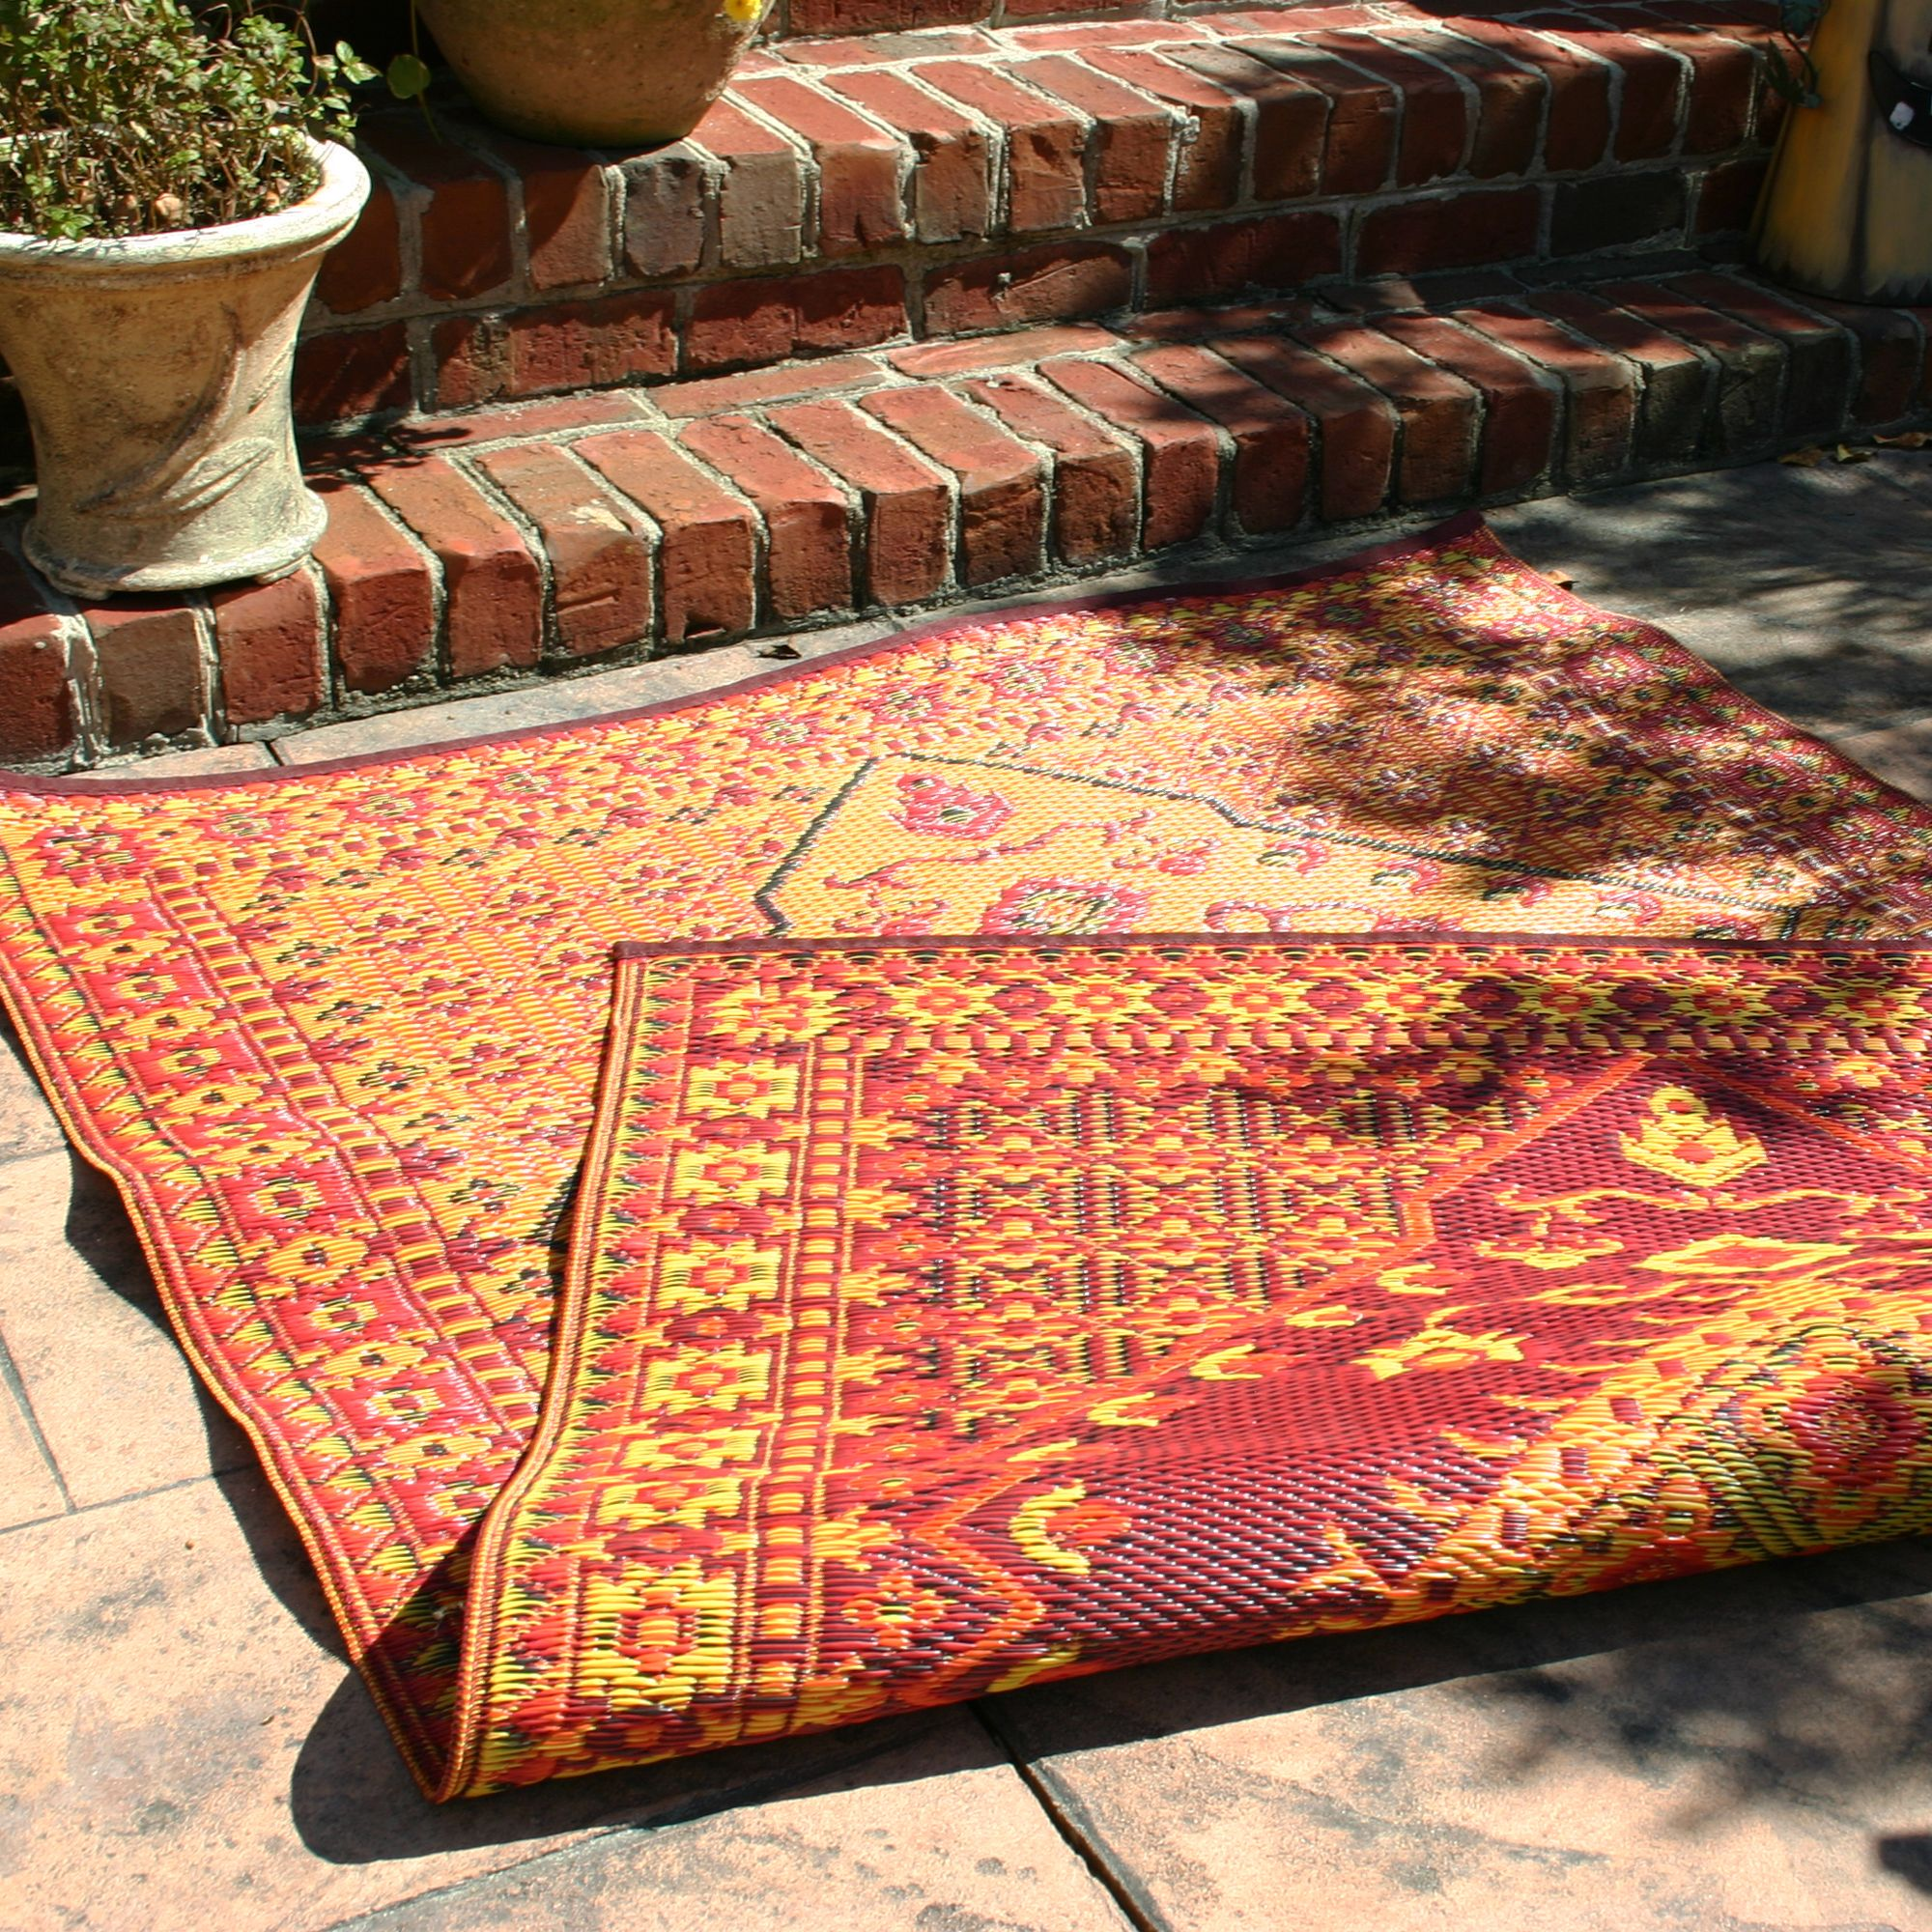 Mad Mats Outdoor Rug Made From Recycled Plastic